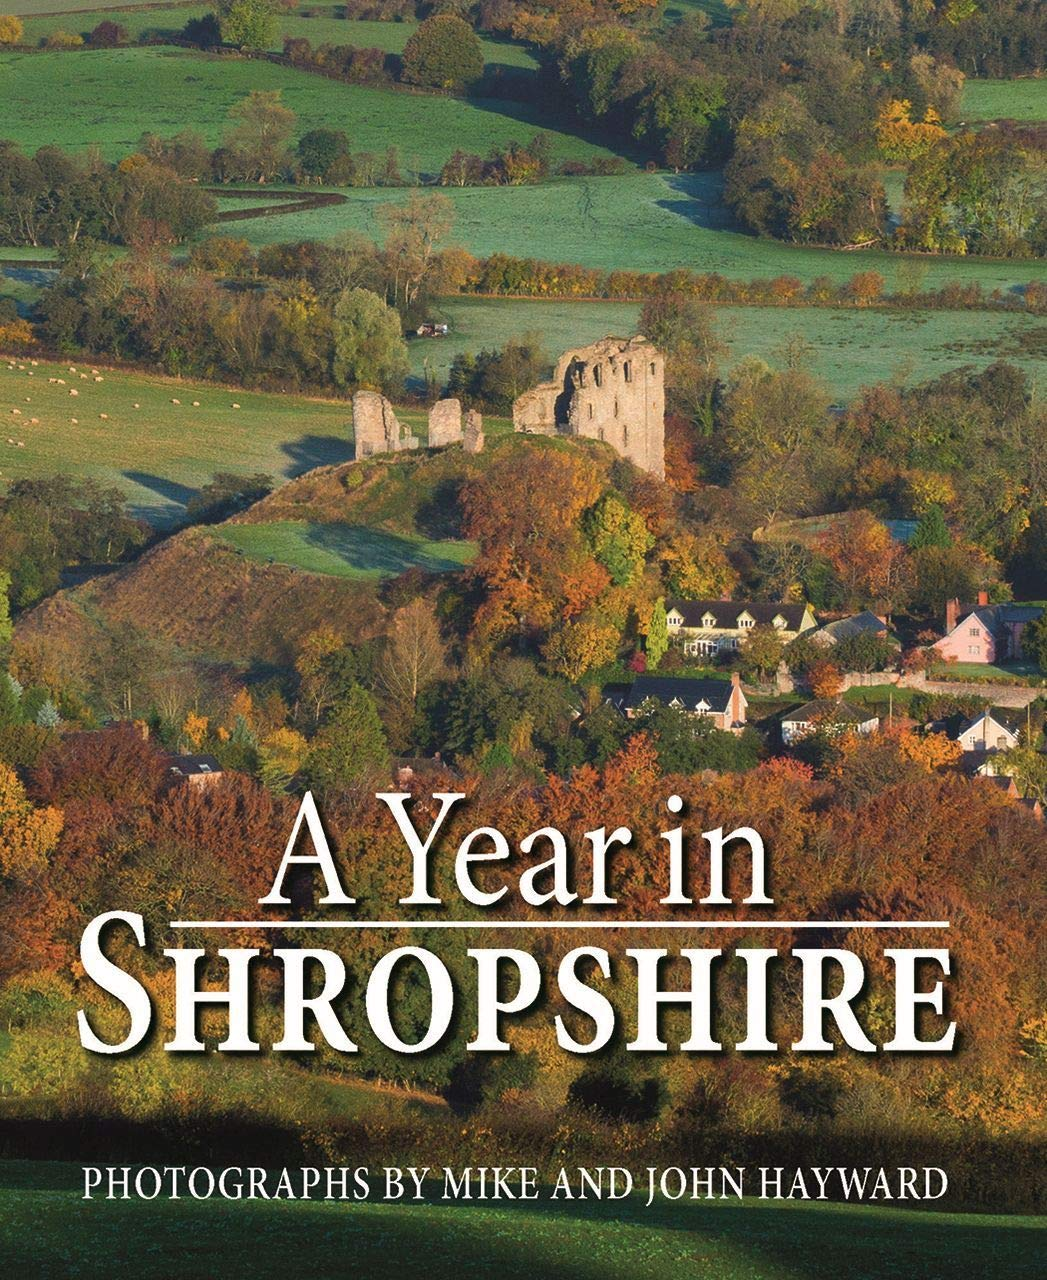 A Year in Shropshire pdf